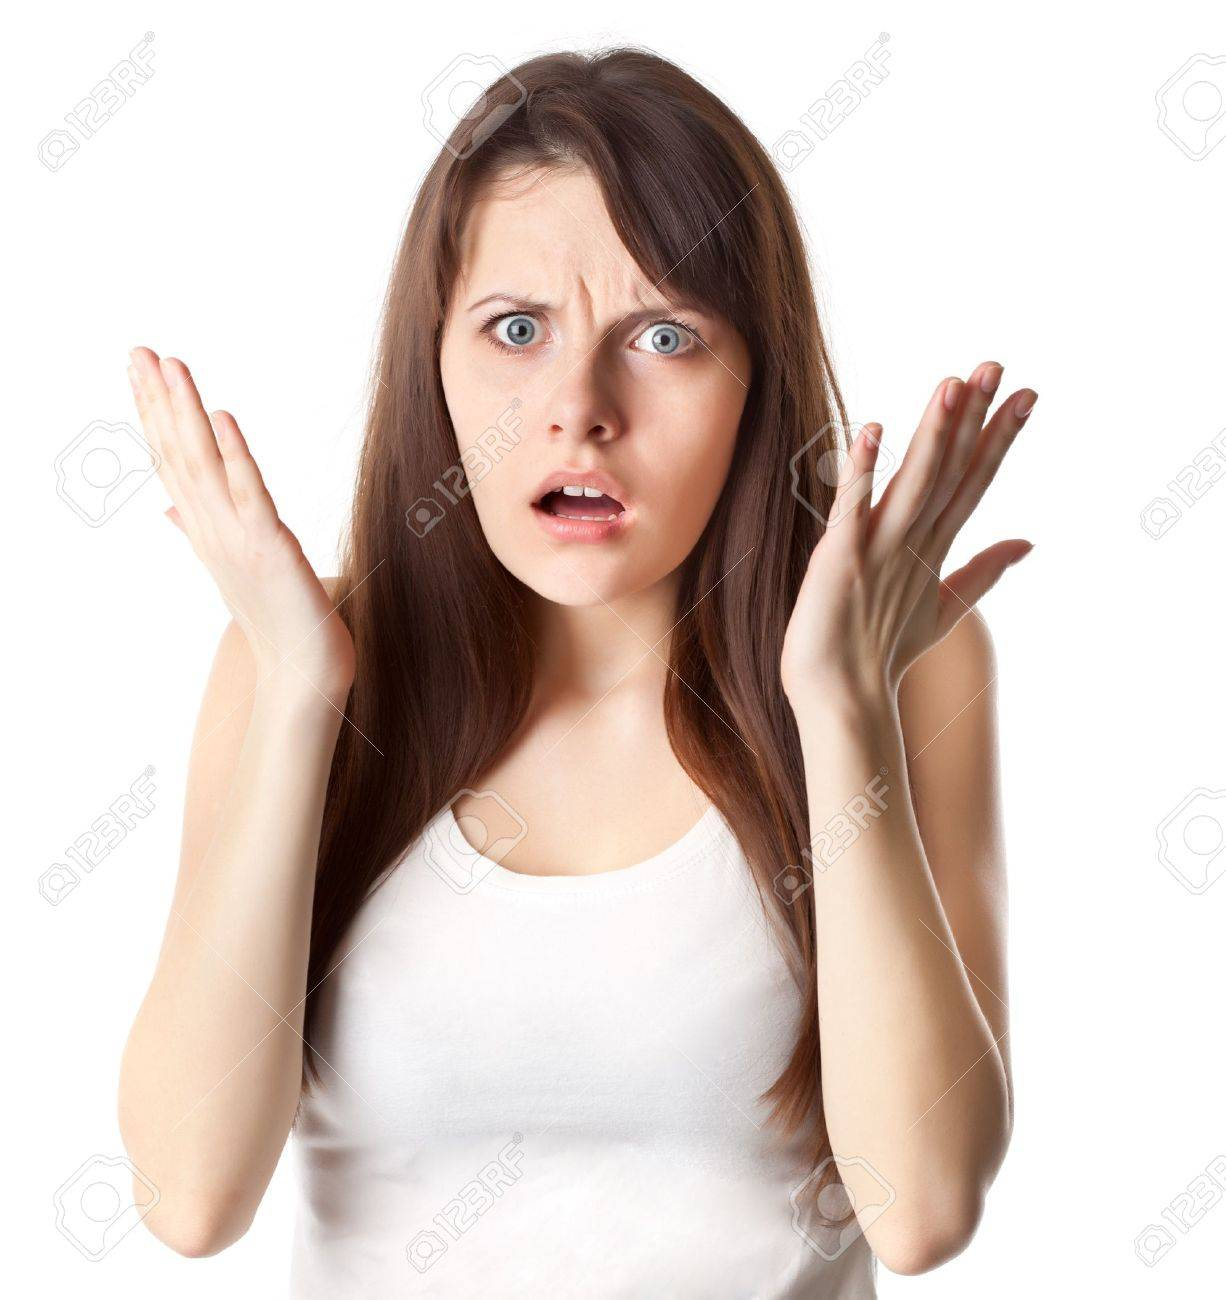 Shocked woman in white t-shirt Studio shot Isolated on white background - 13126367